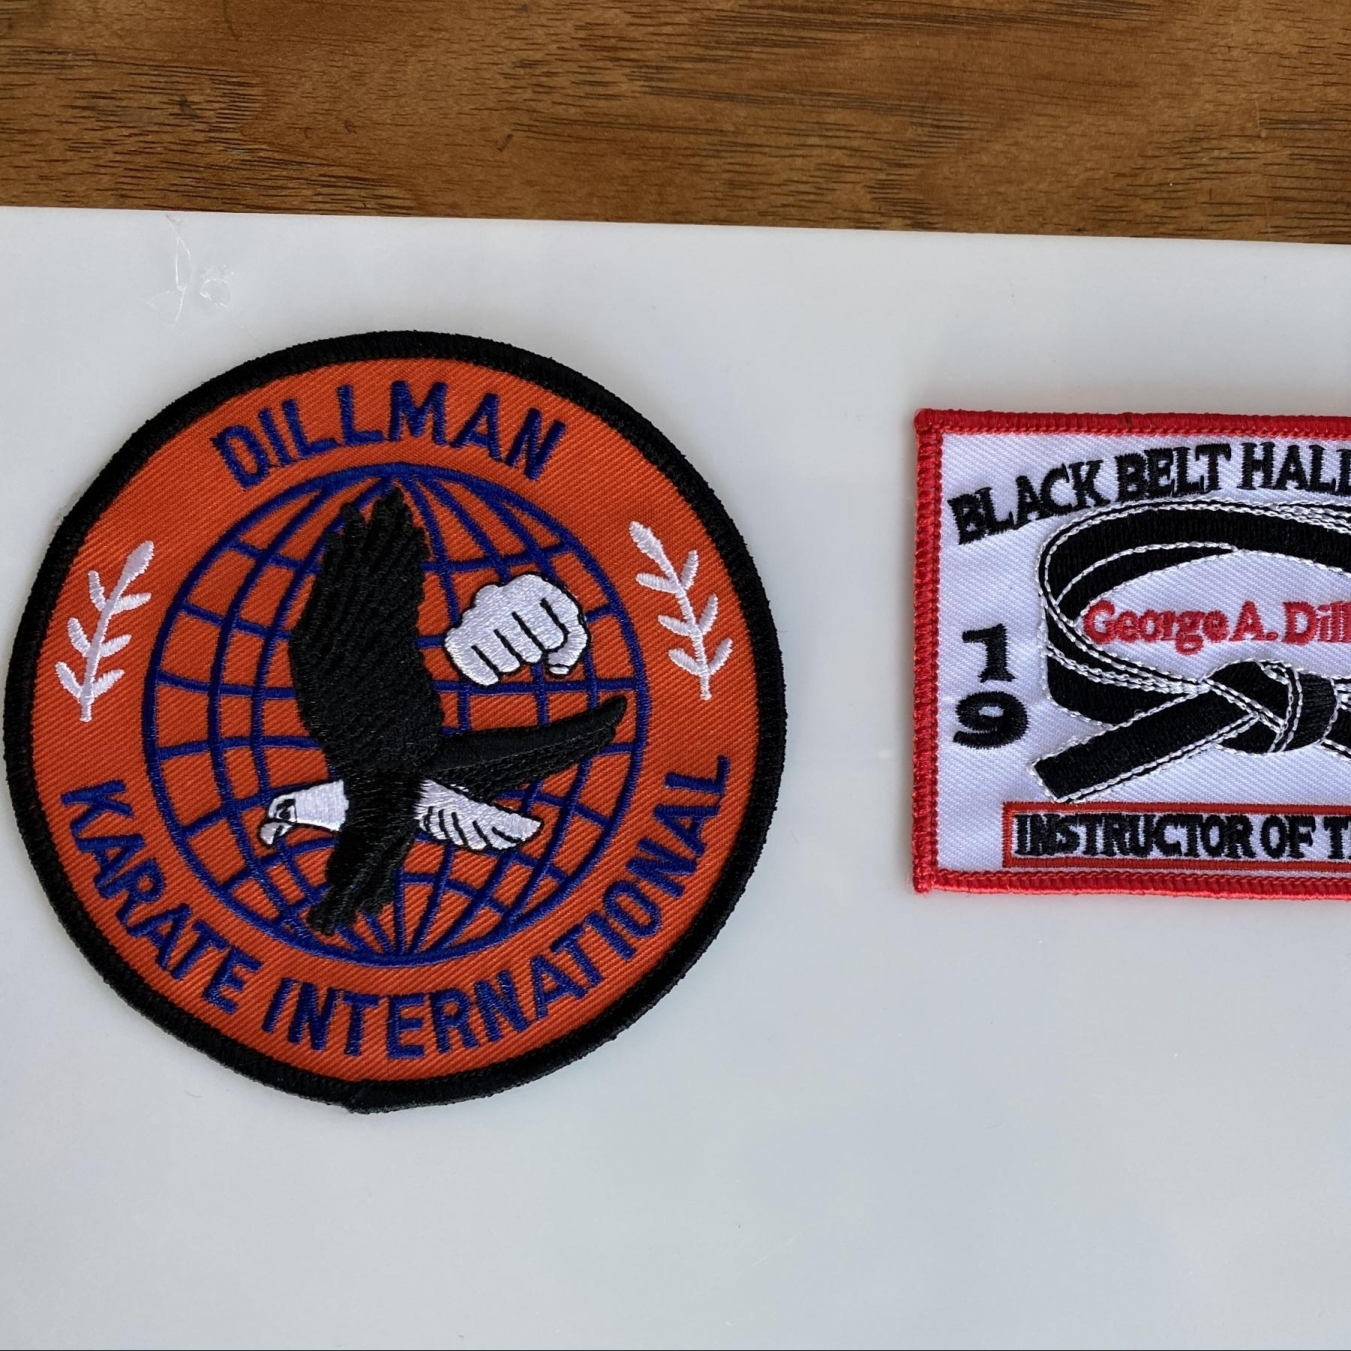 Dillman Karate Embroidered Patches